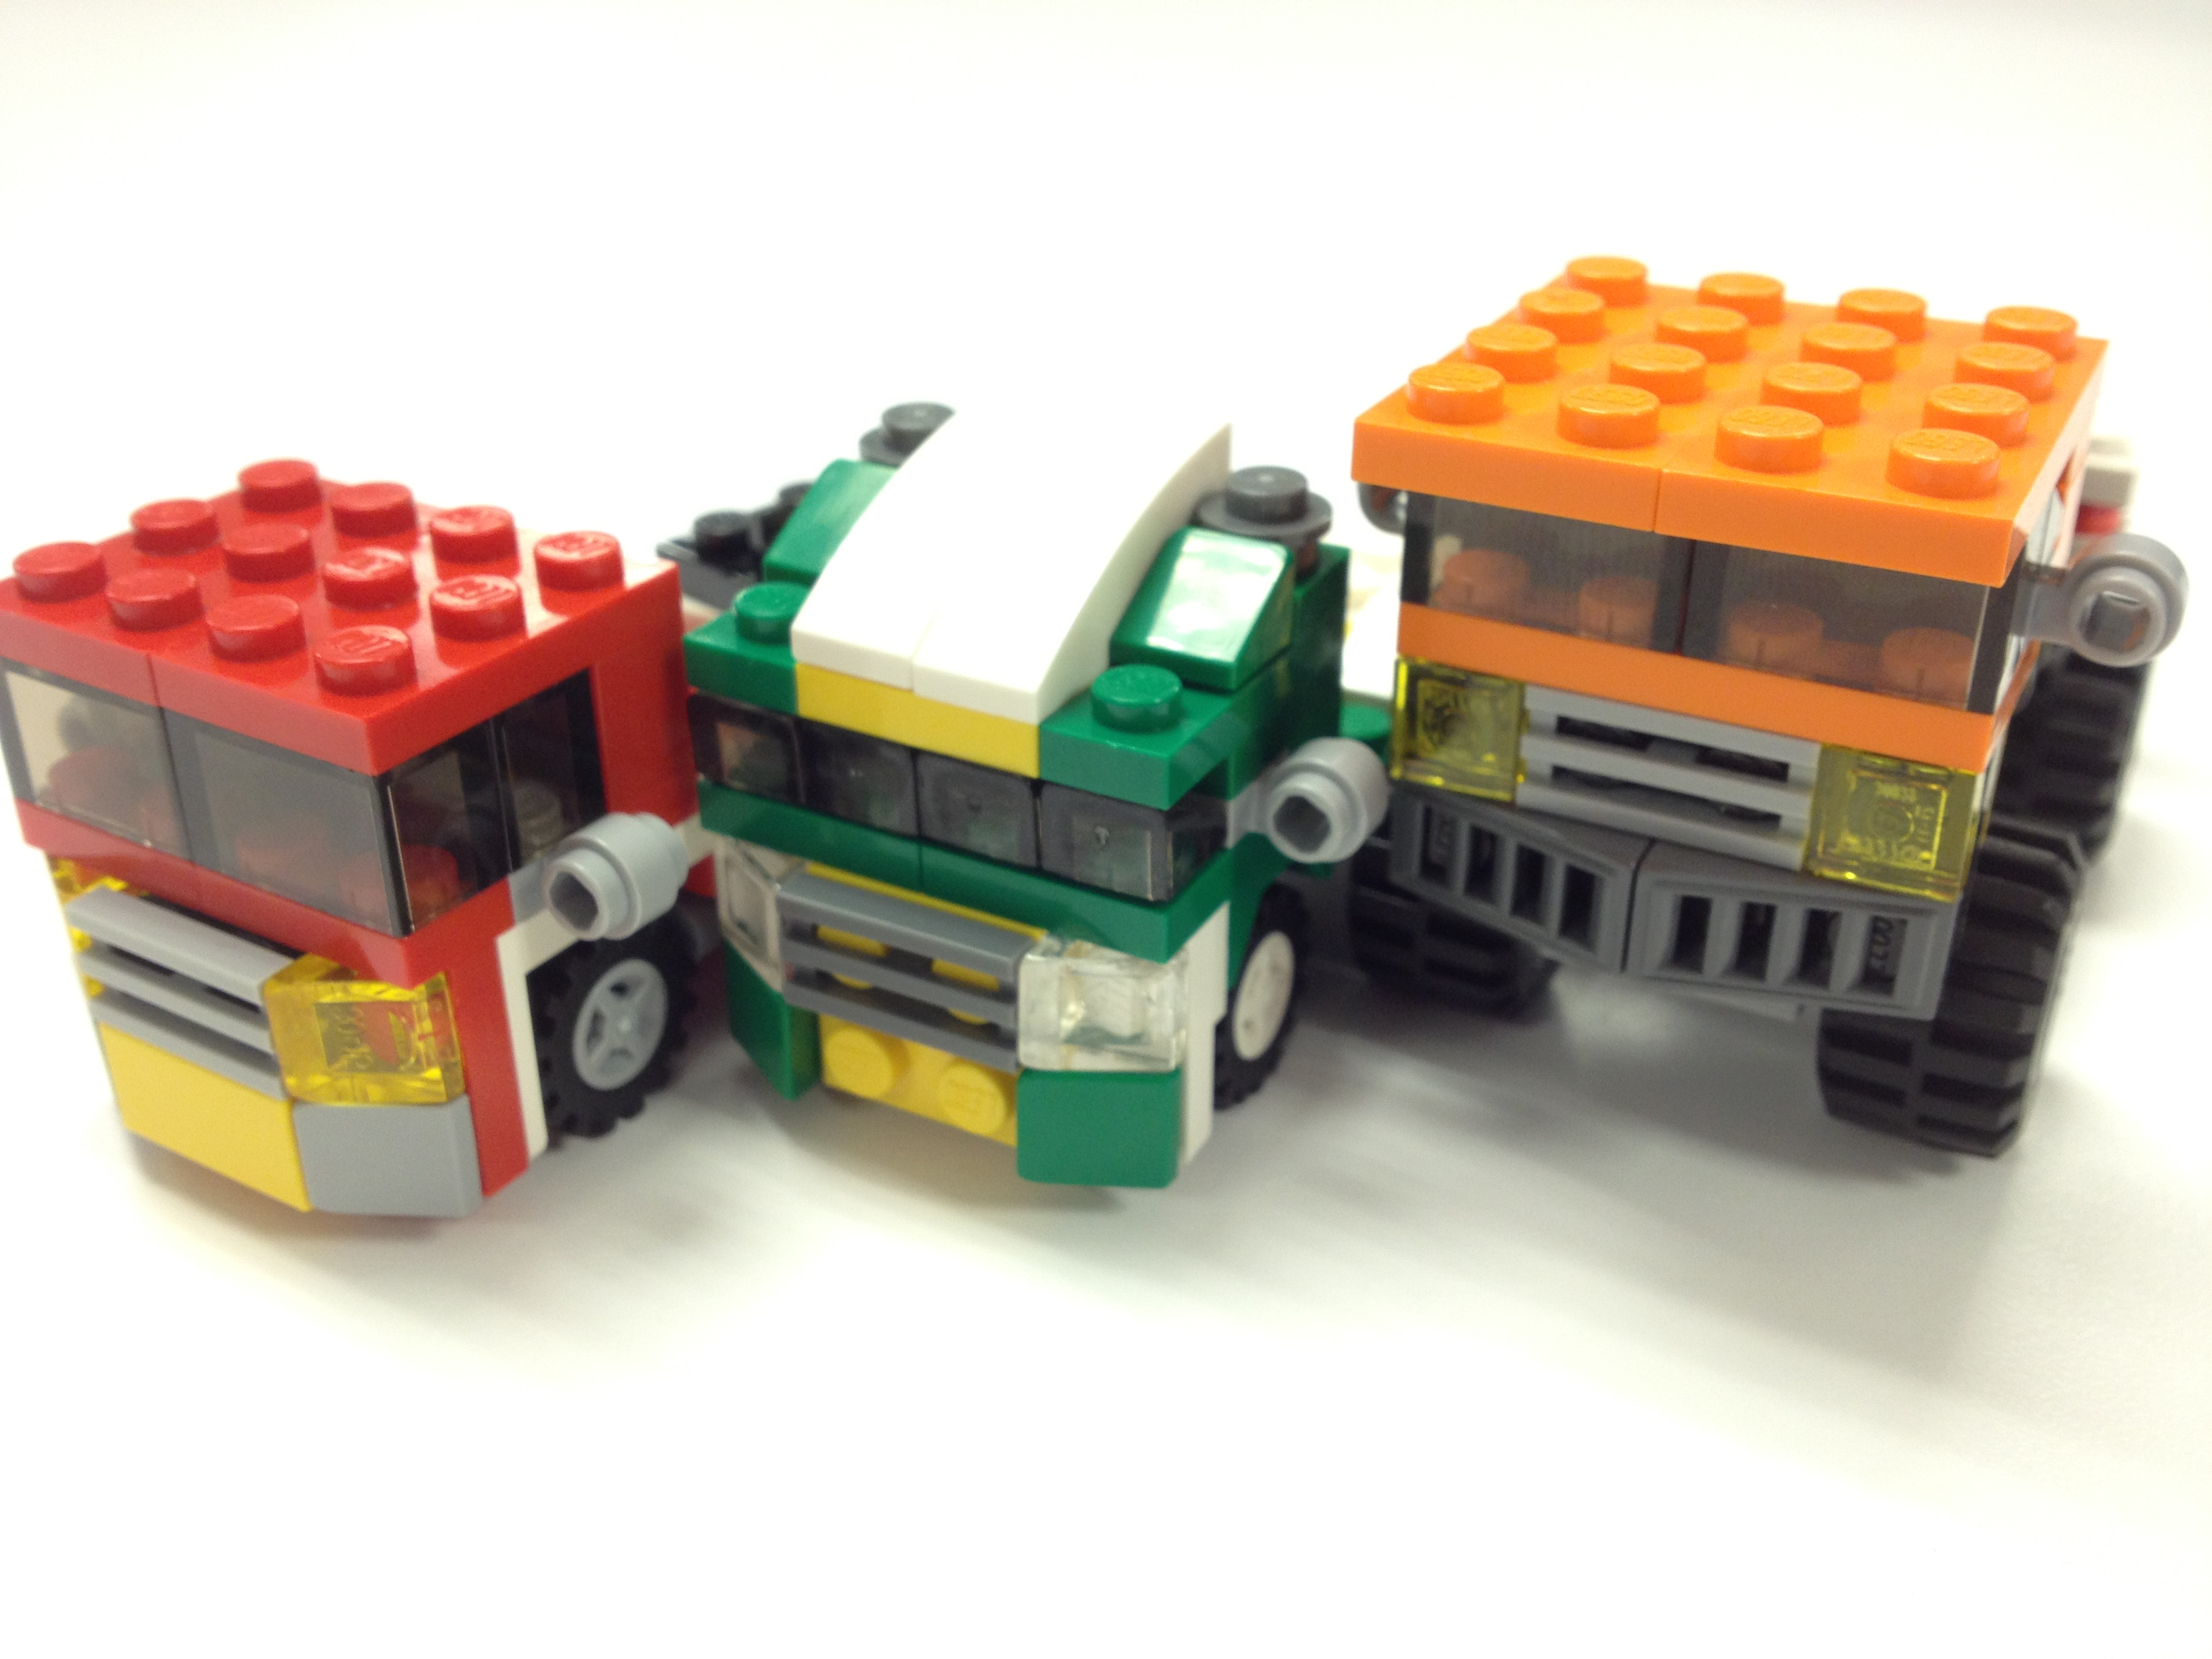 LEGO Big Rigs on Small Scale